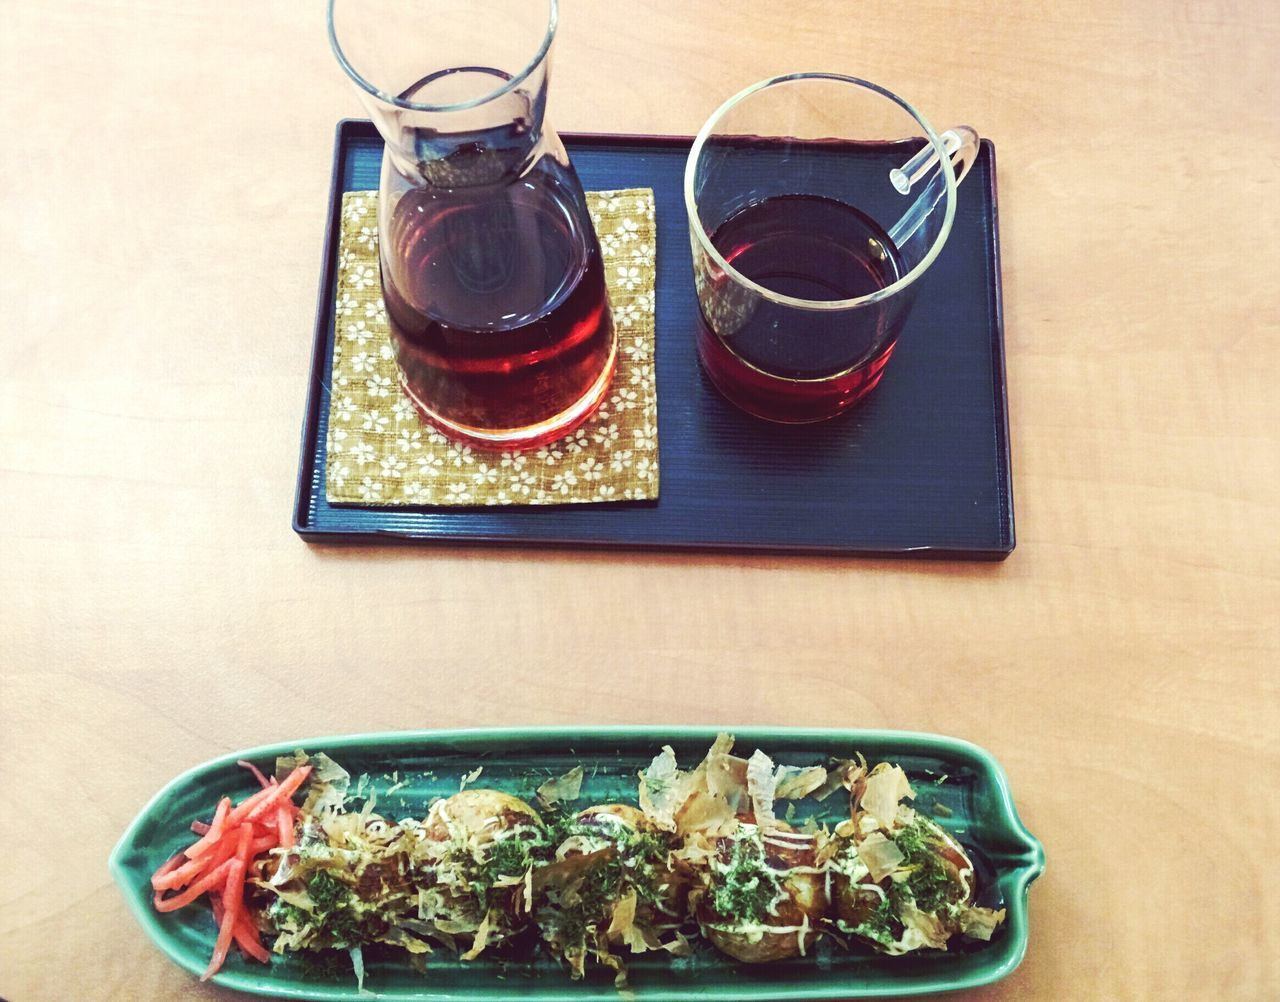 On A Plate Tea Time Oolong Tea Takoyaki Japanese Food Foodporn Foodphotography Asianfood Yummyinmytummy View Dish Of The Day The OO Mission